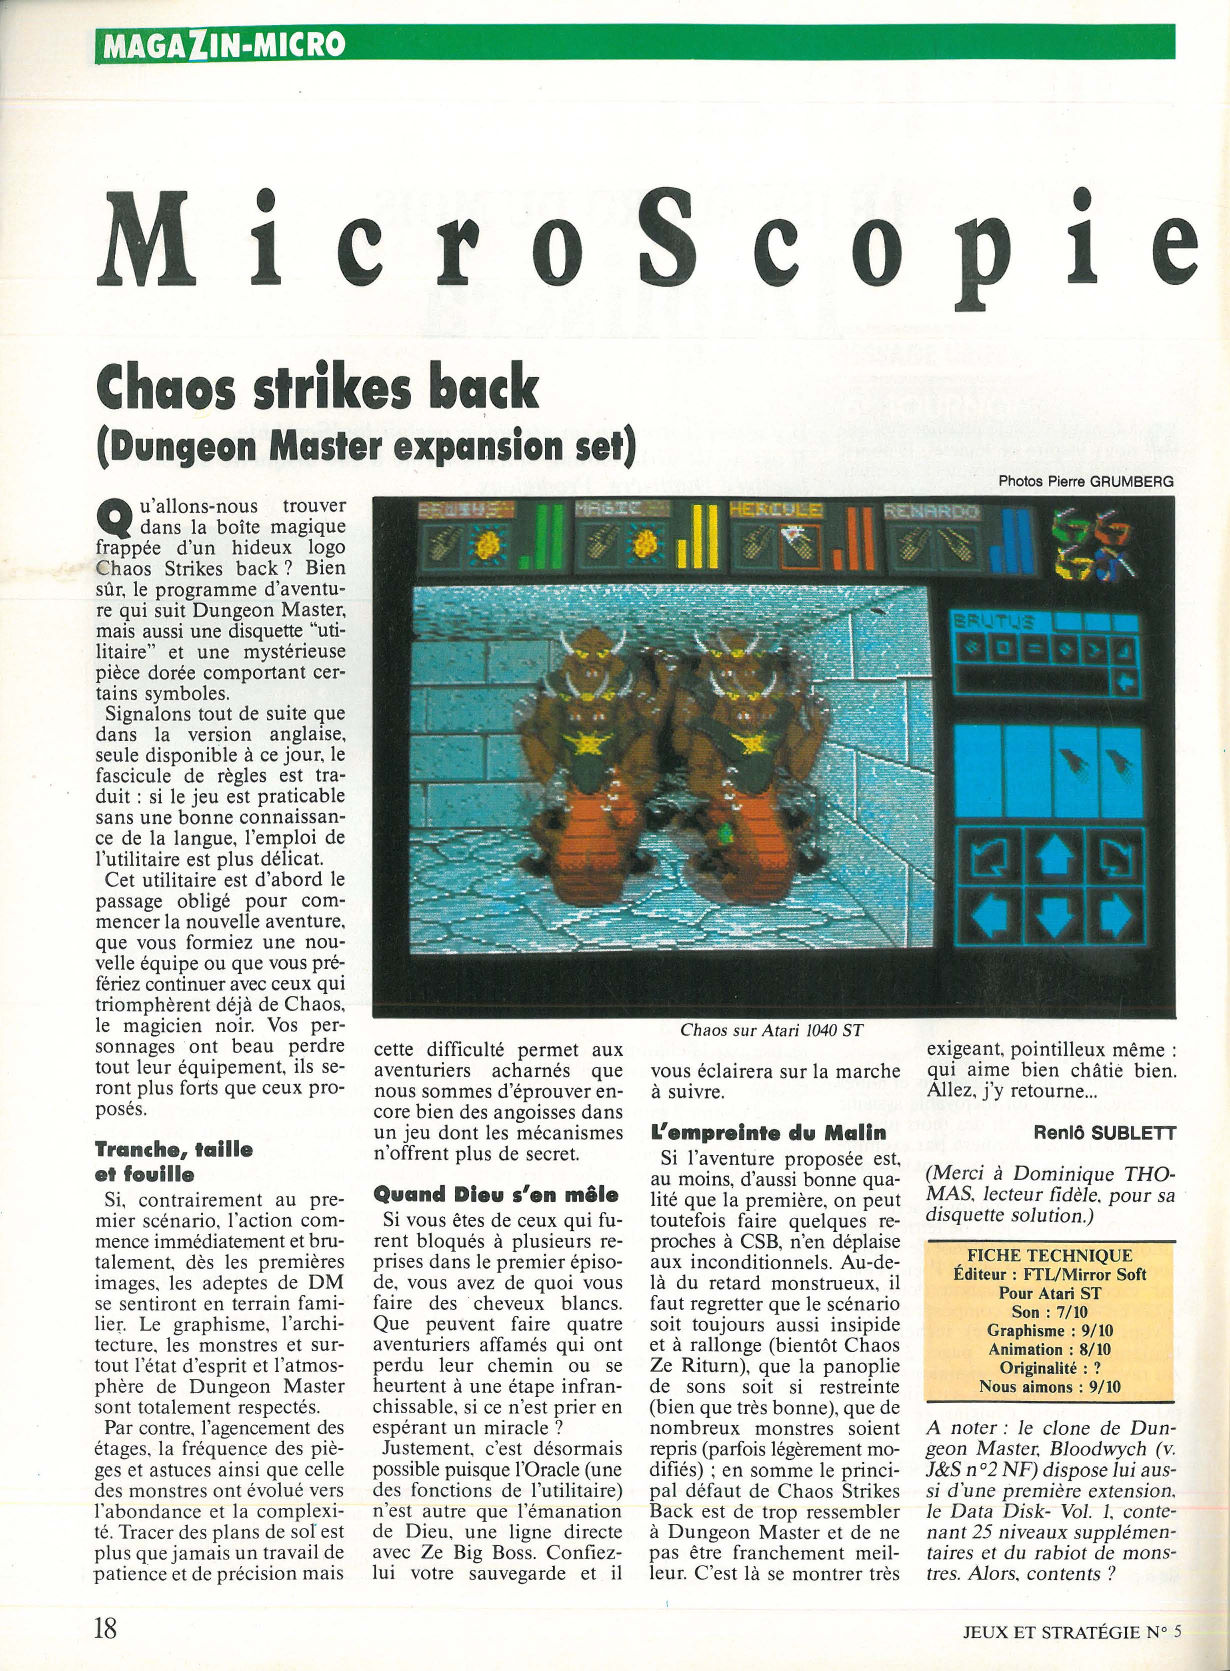 Chaos Strikes Back Review published in French magazine 'Jeux et Strategie', Issue #5 March 1990, Page 18